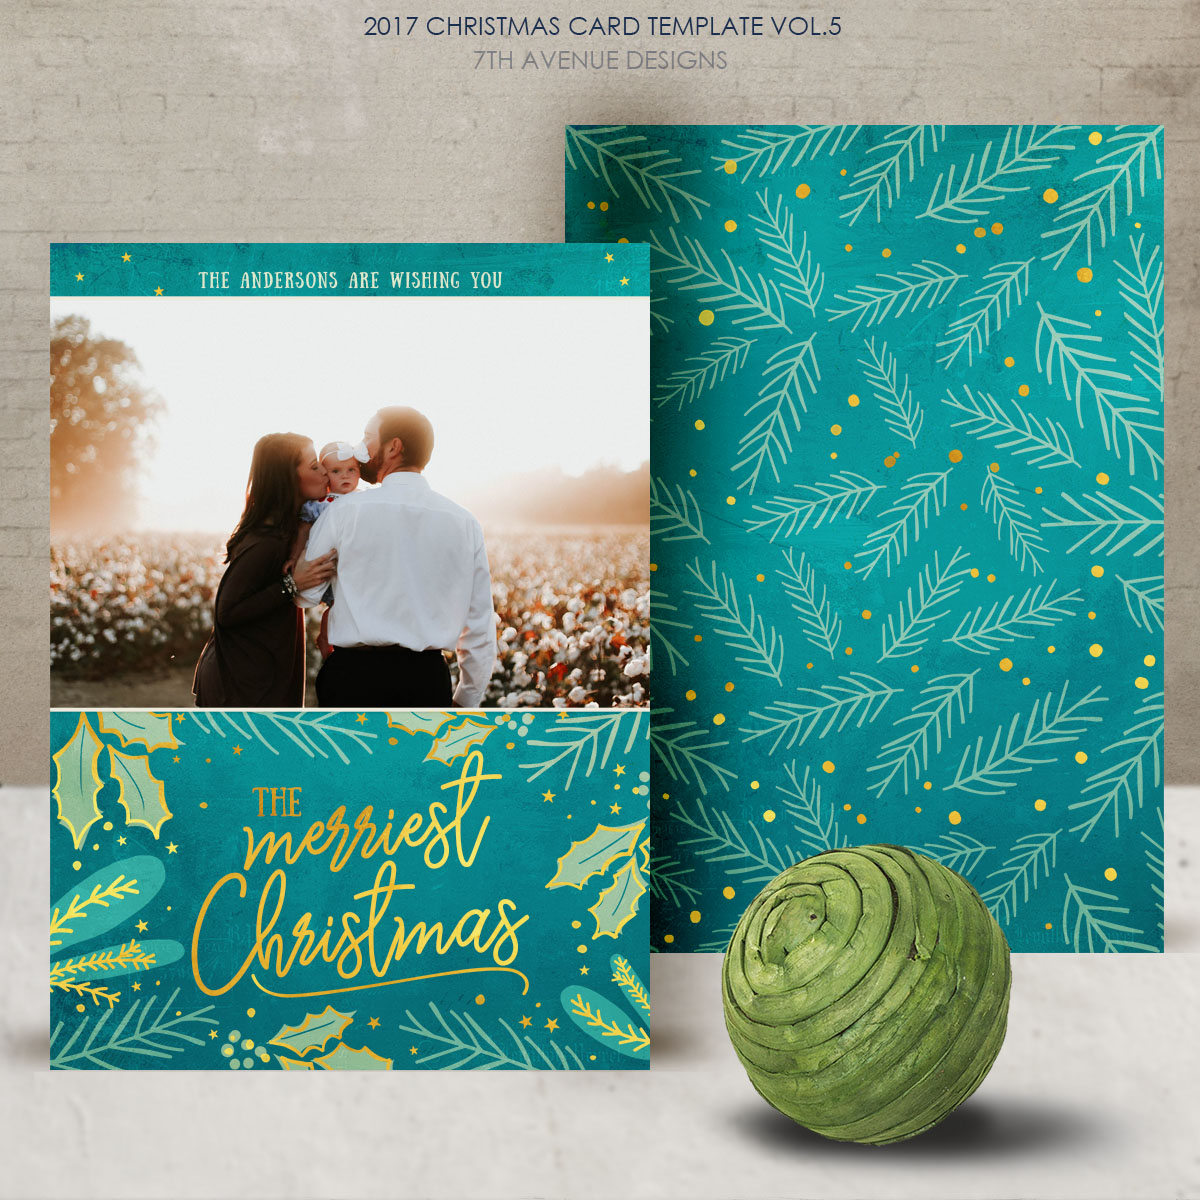 2017 Christmas Card Templates vol.5